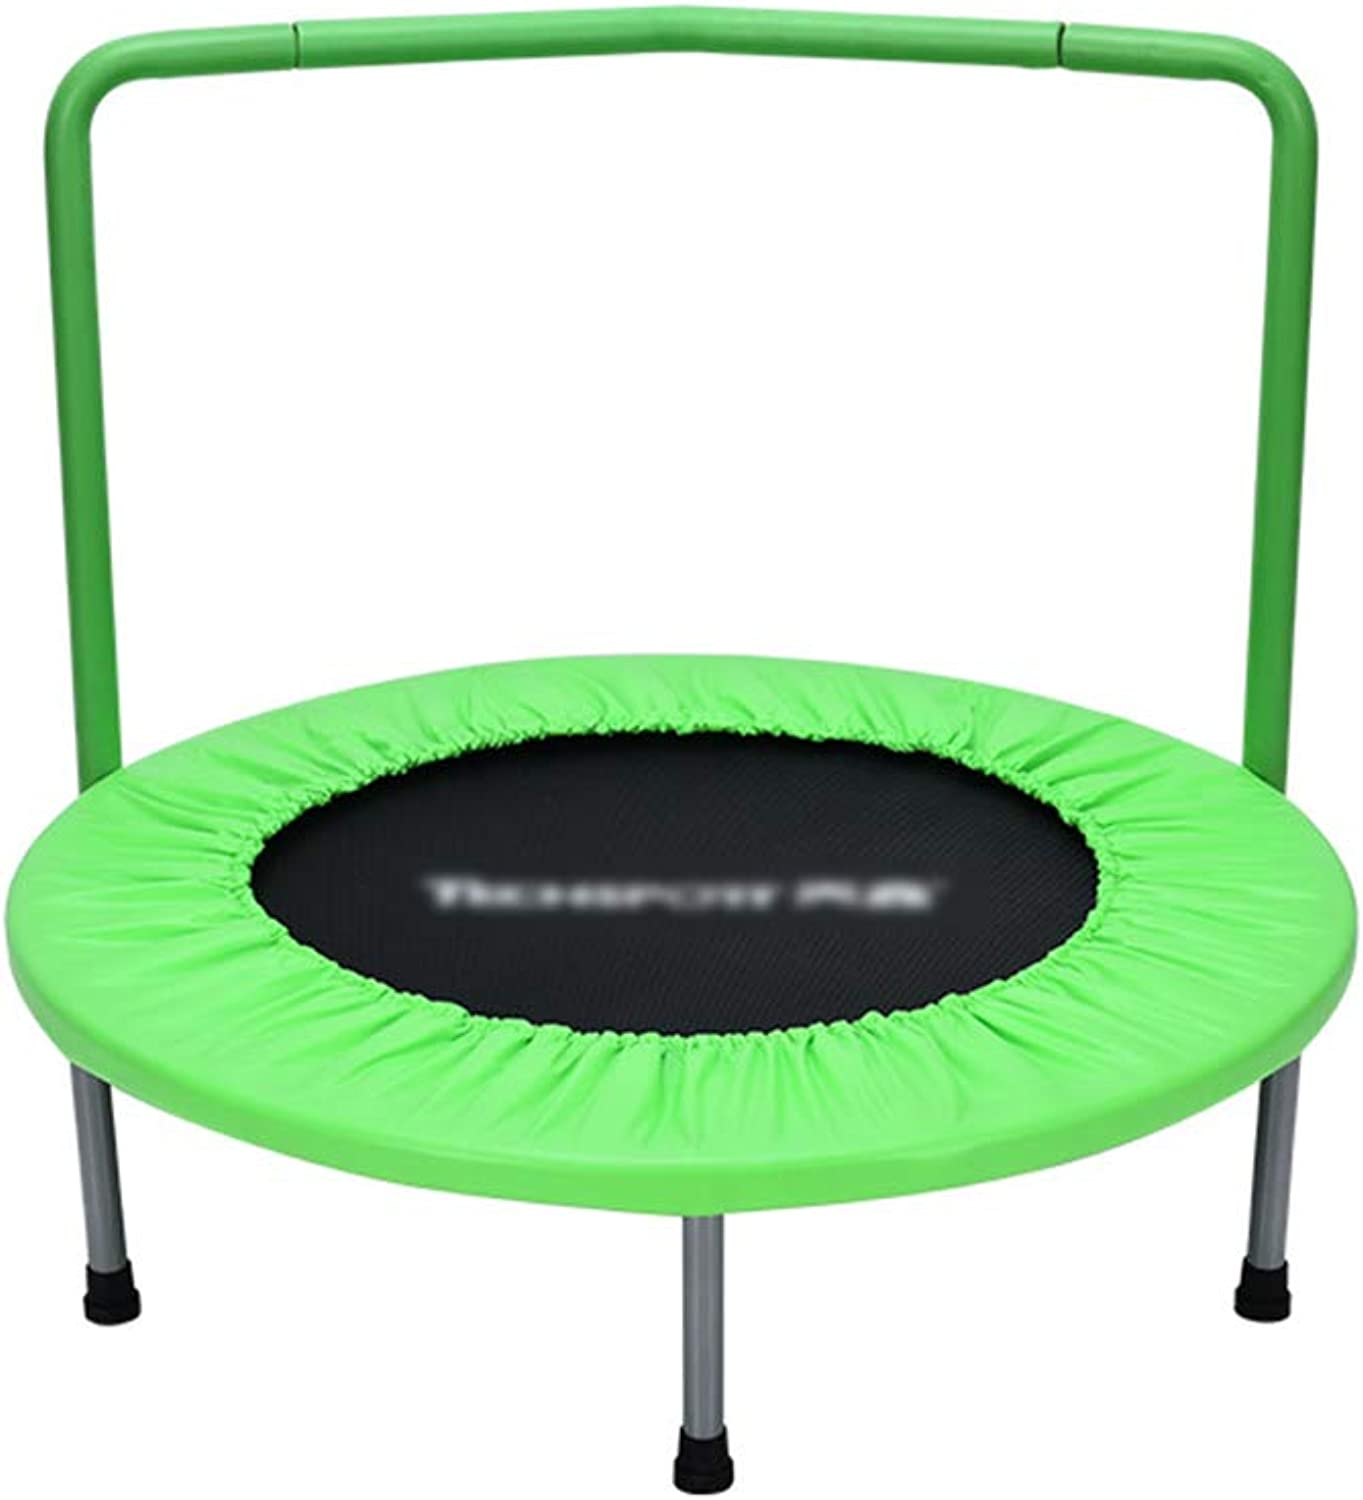 Trampolines 36 Inch with Handrail Mini Portable Jogging Fitness Adult and Kids Excercise Equipment Jumping bed